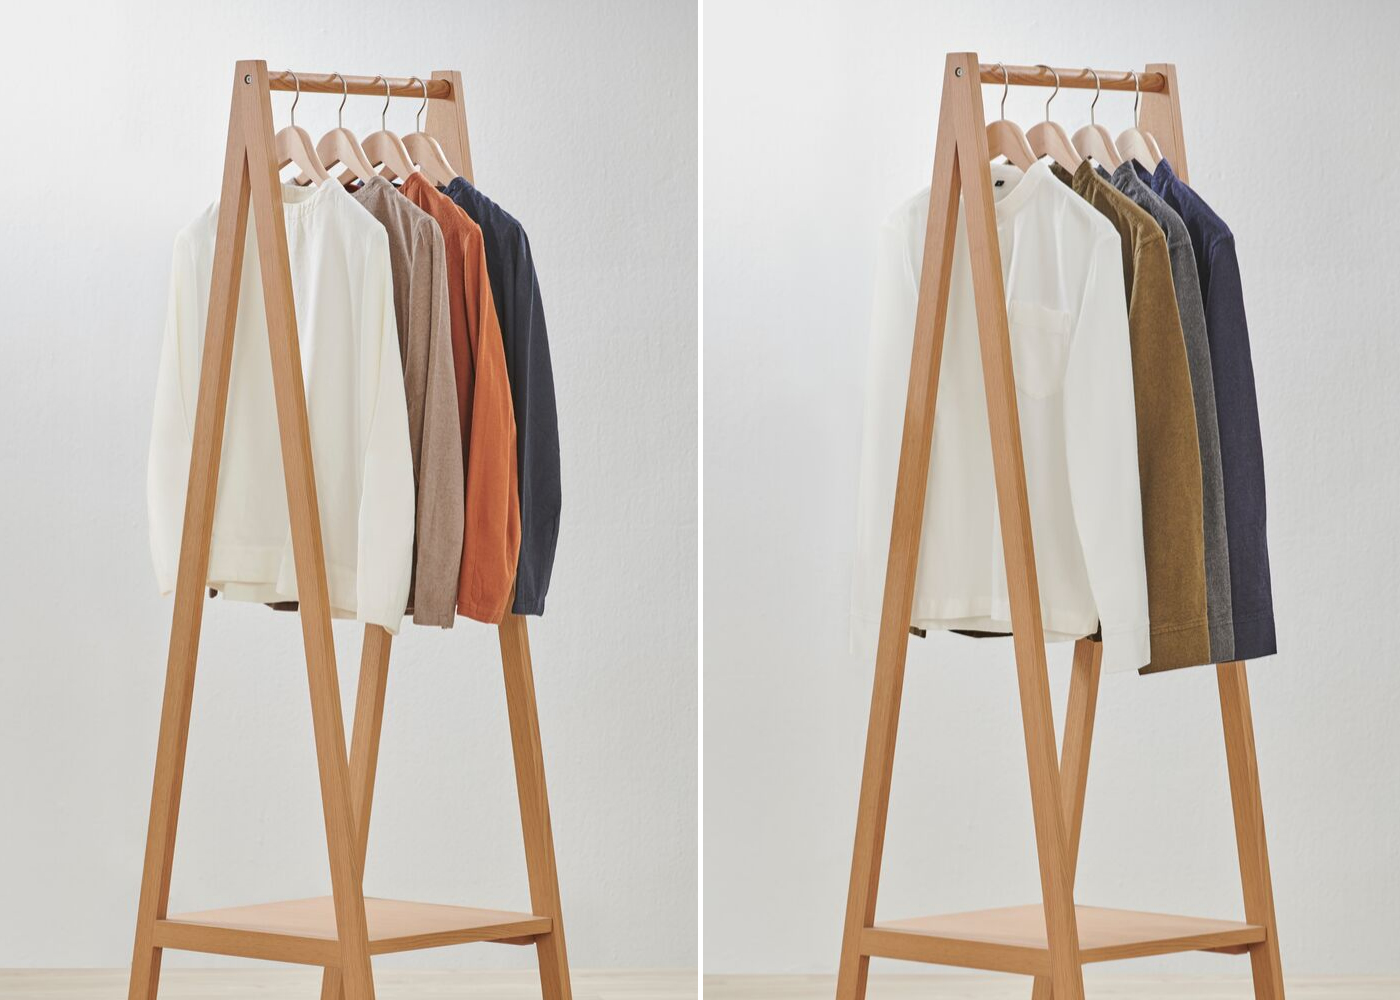 Left: Ladies' XinJiang Cotton Flannel Blouse collection, right: Men's XinJiang Cotton Flannel Stand Collar Shirt collection. (Client to advise) Photography: Muji